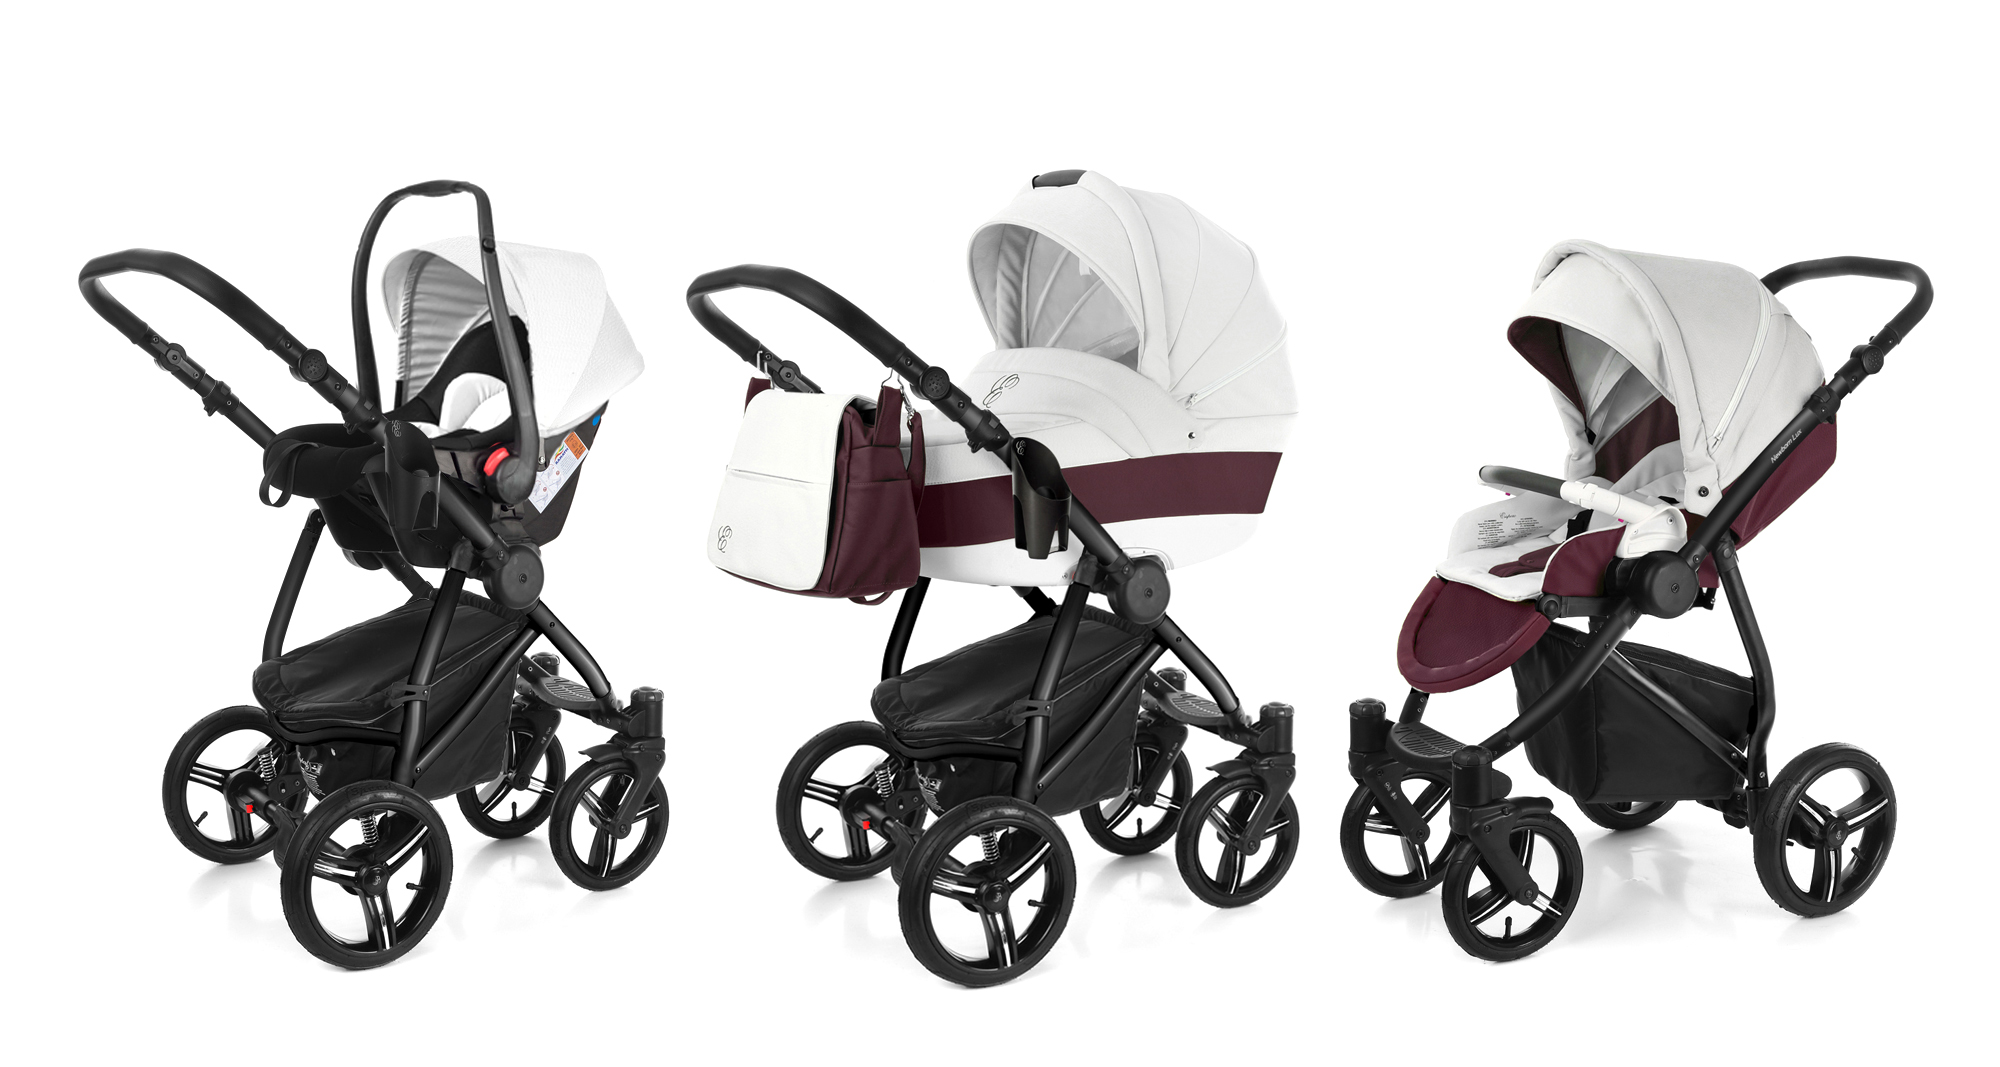 Коляска 3 в 1 Esspero Grand Newborn Lux (шасси Black) Maroon leatherette